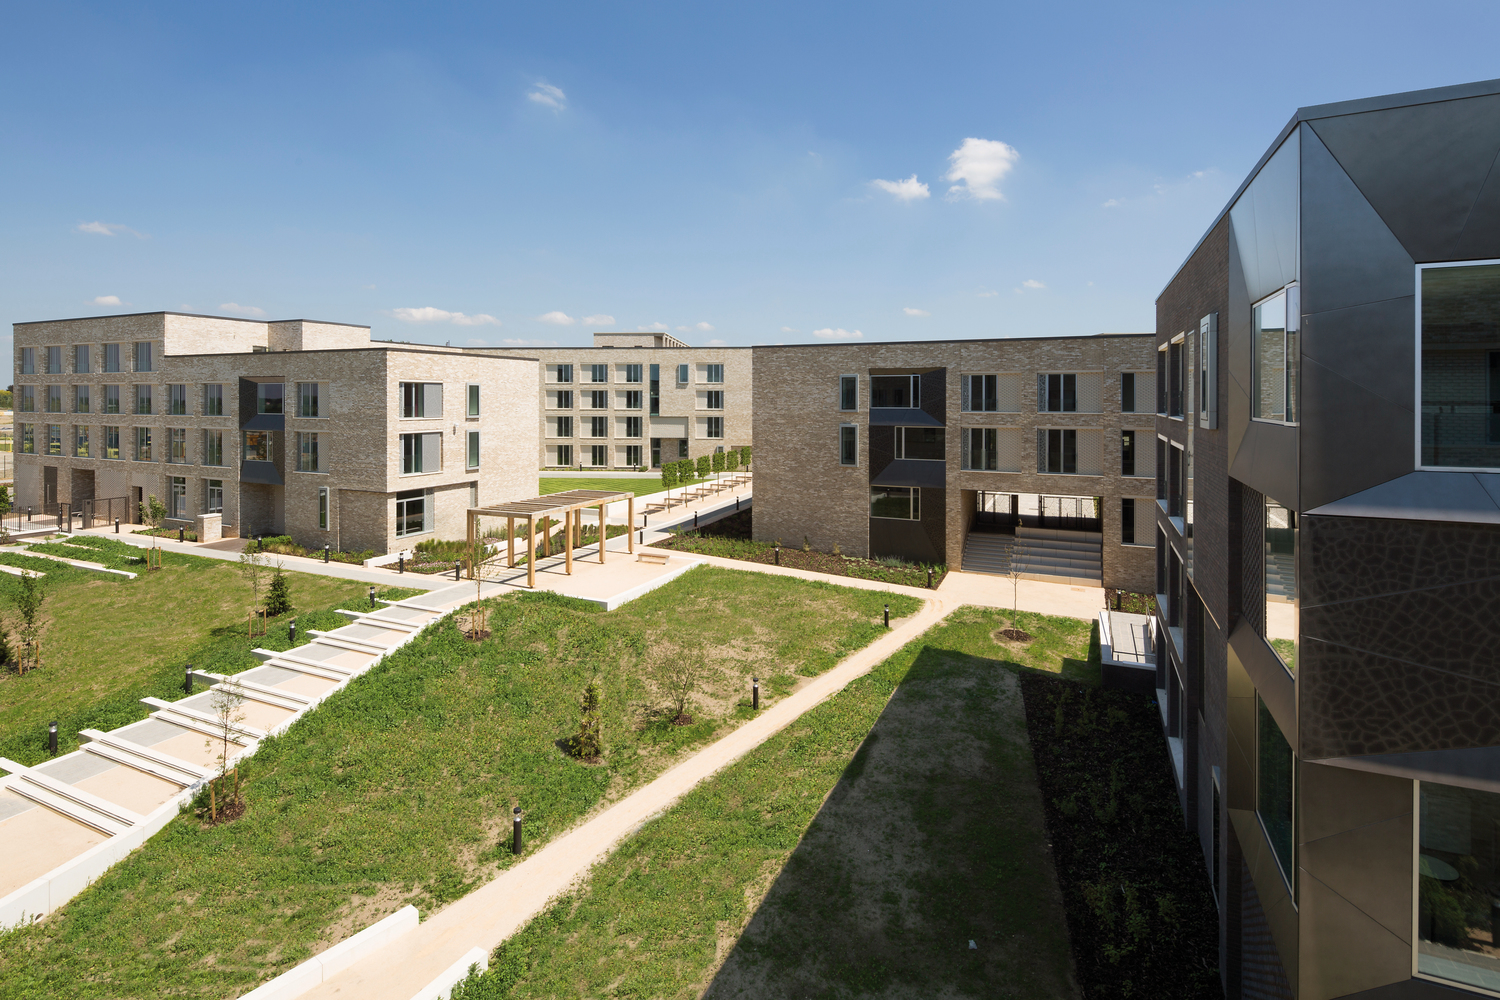 Architects' Journal conducts masterplan study of North West Cambridge